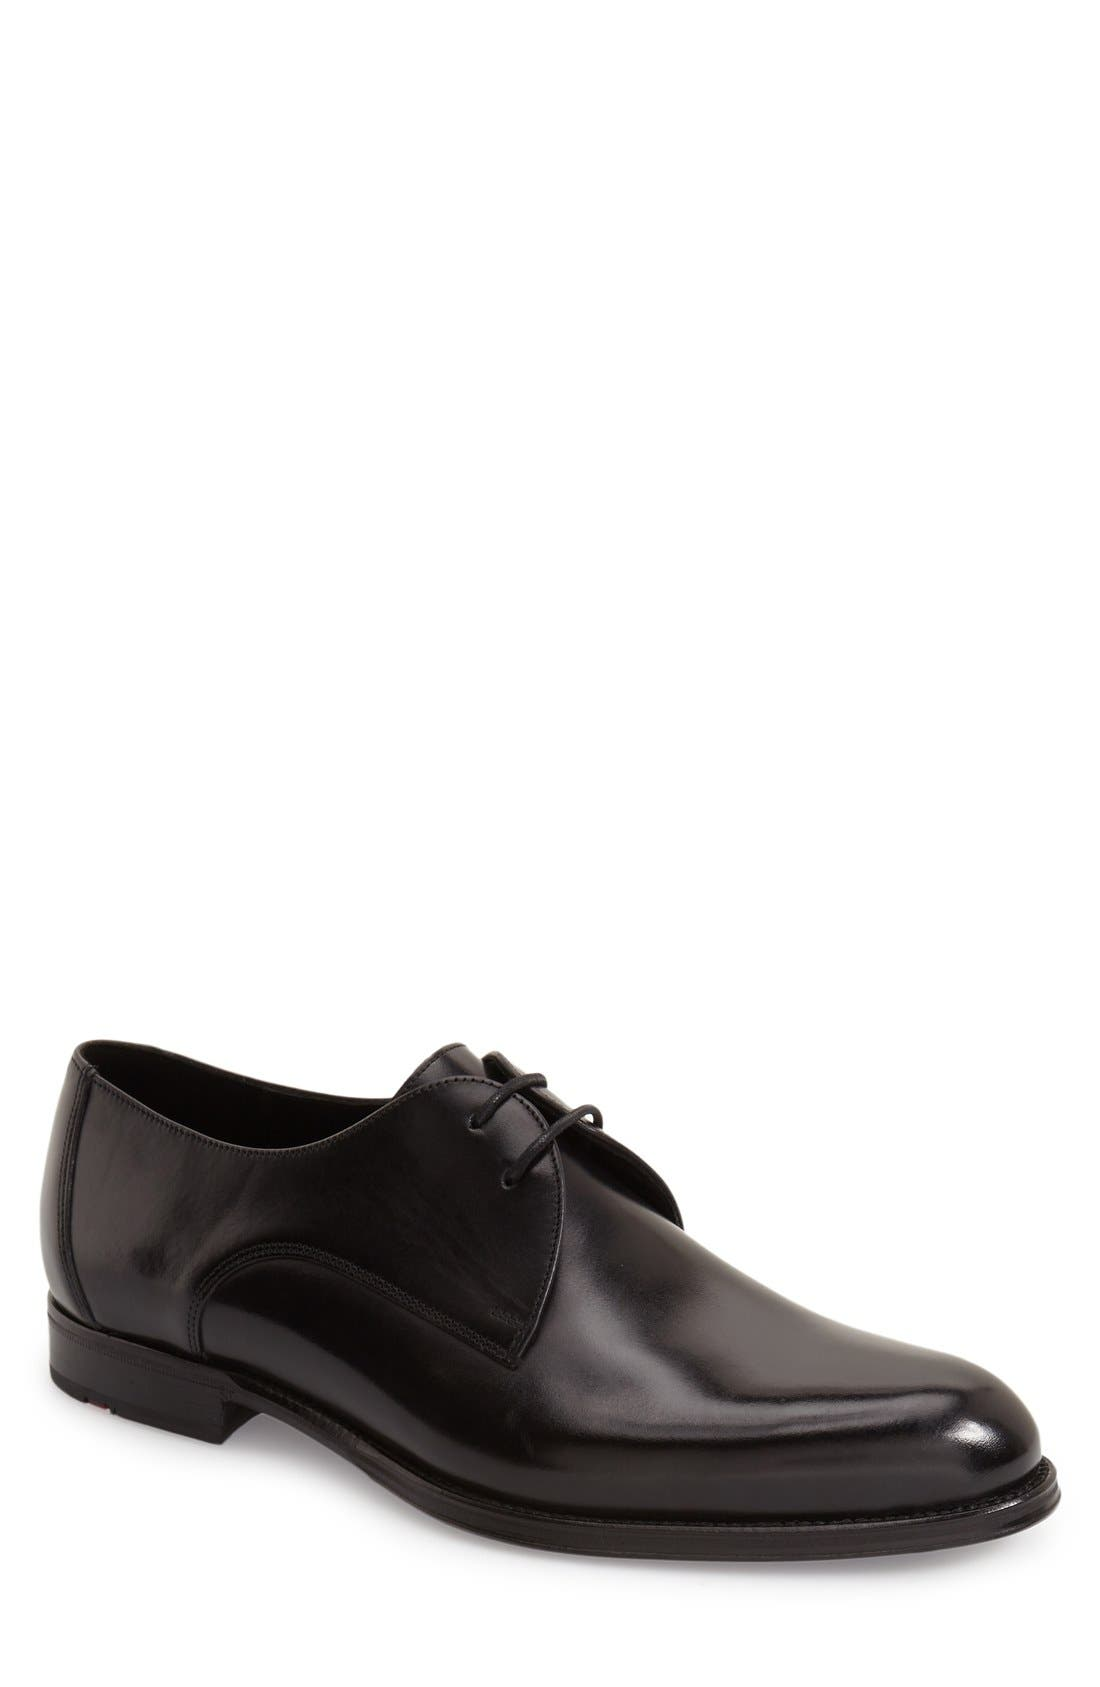 'Monza' Plain Toe Derby,                         Main,                         color, Black